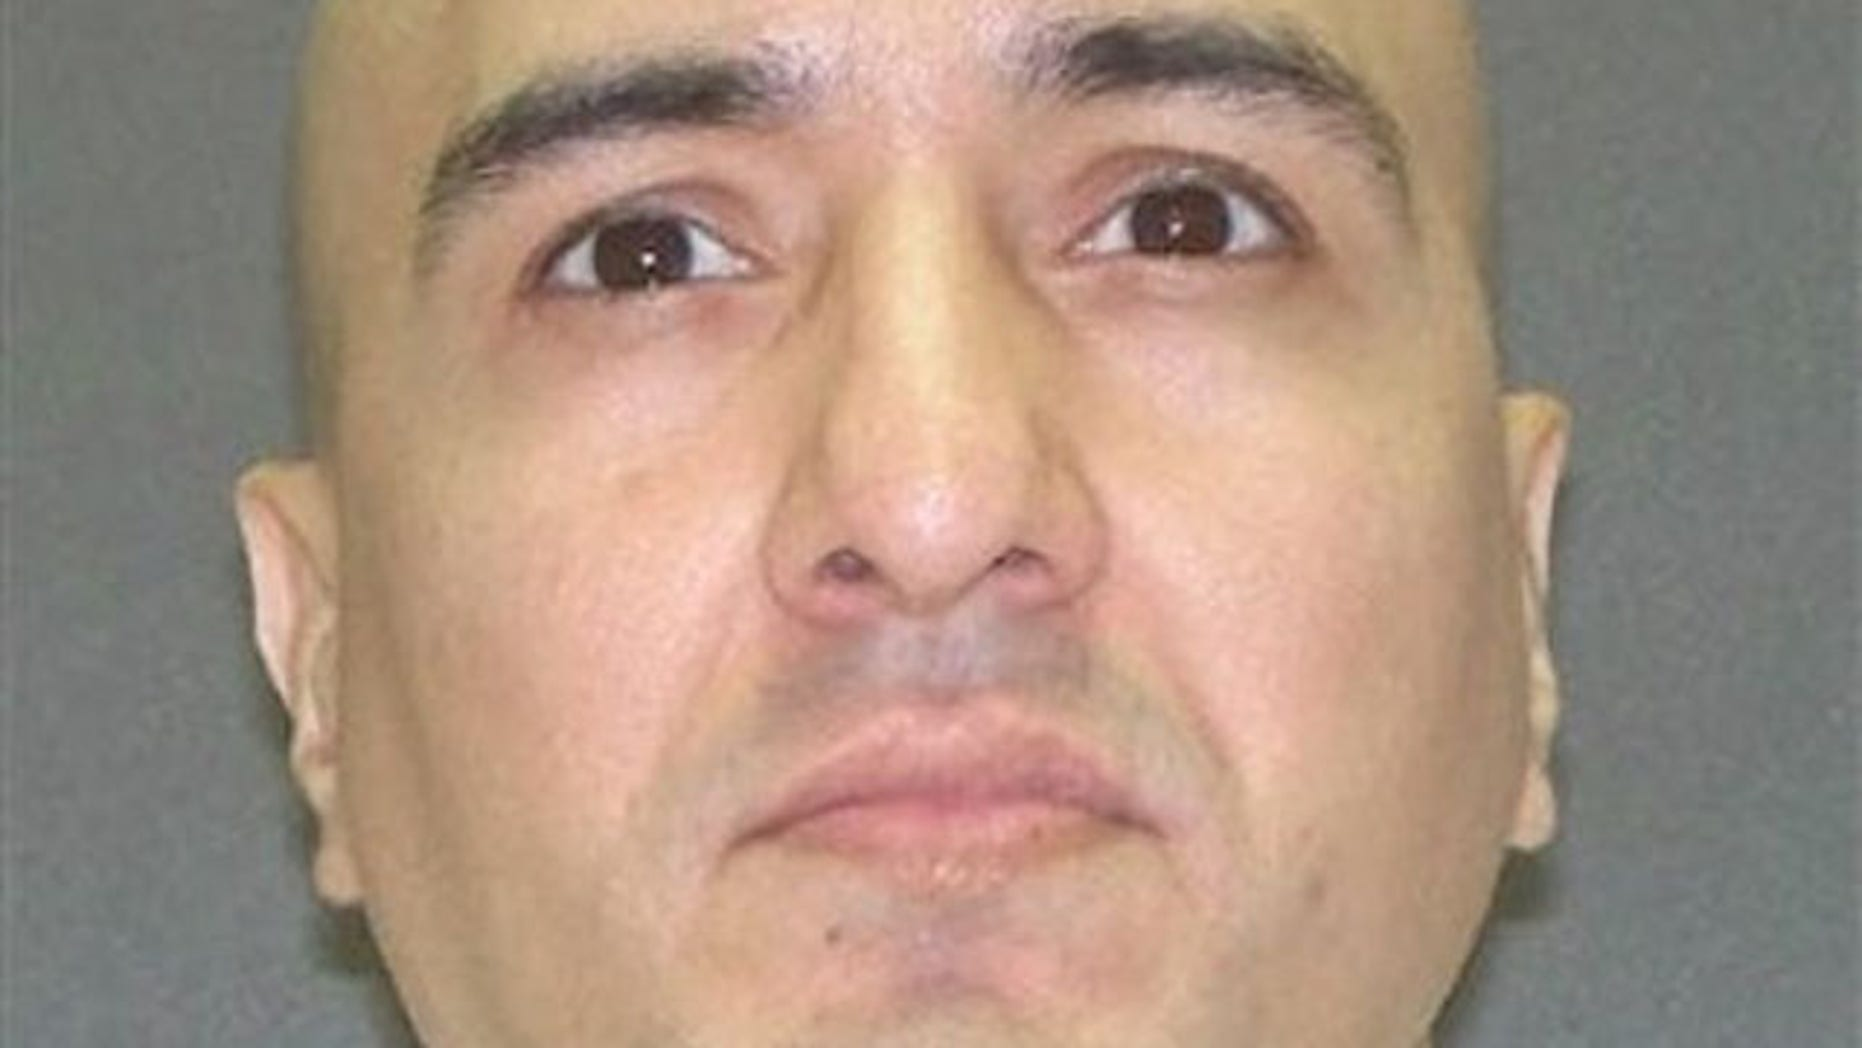 Peter Anthony Cantu is shown in this undated Texas Department of Criminal Justice handout photo. Cantu is the last of three men scheduled to die by lethal injection for the June 1993 murders of 14-year-old Jennifer Ertman and 16-year-old Elizabeth Pena (AP).